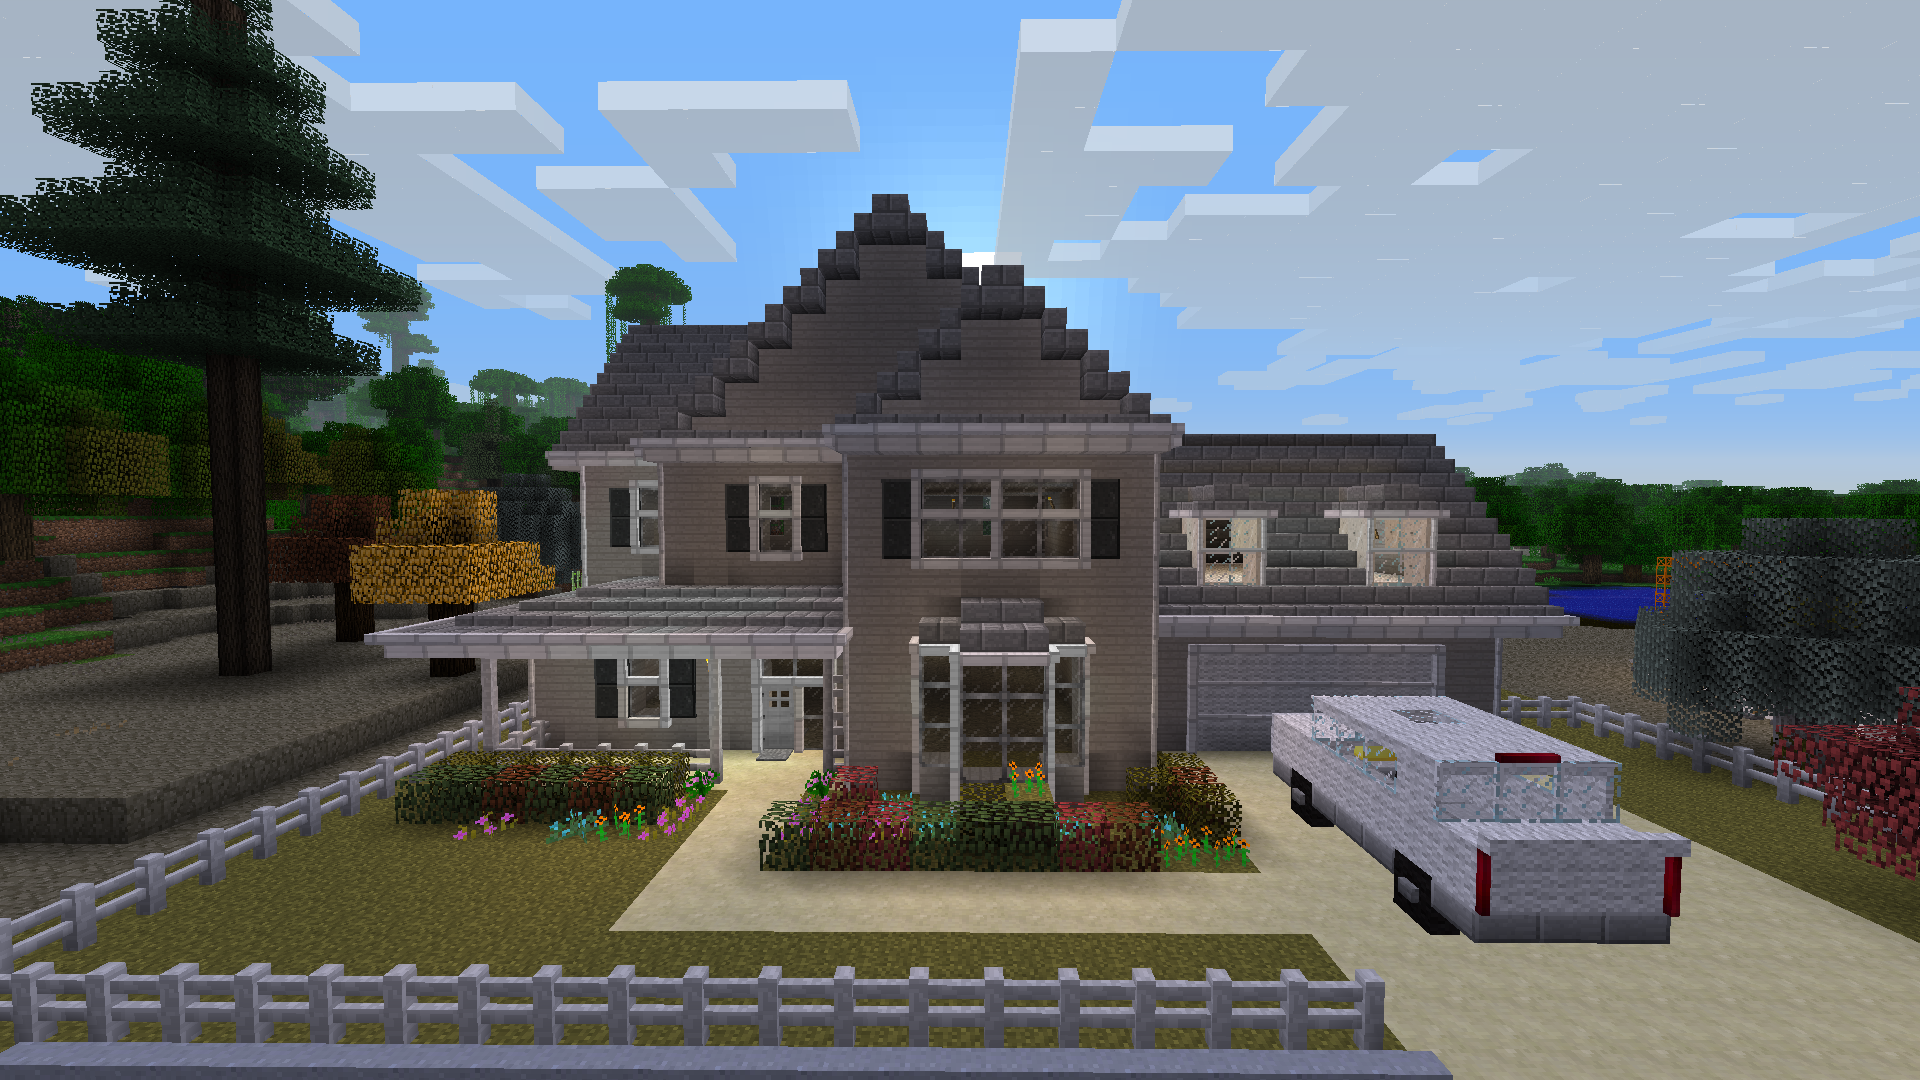 Epic Minecraft House Done In The Style Of A Treehouse